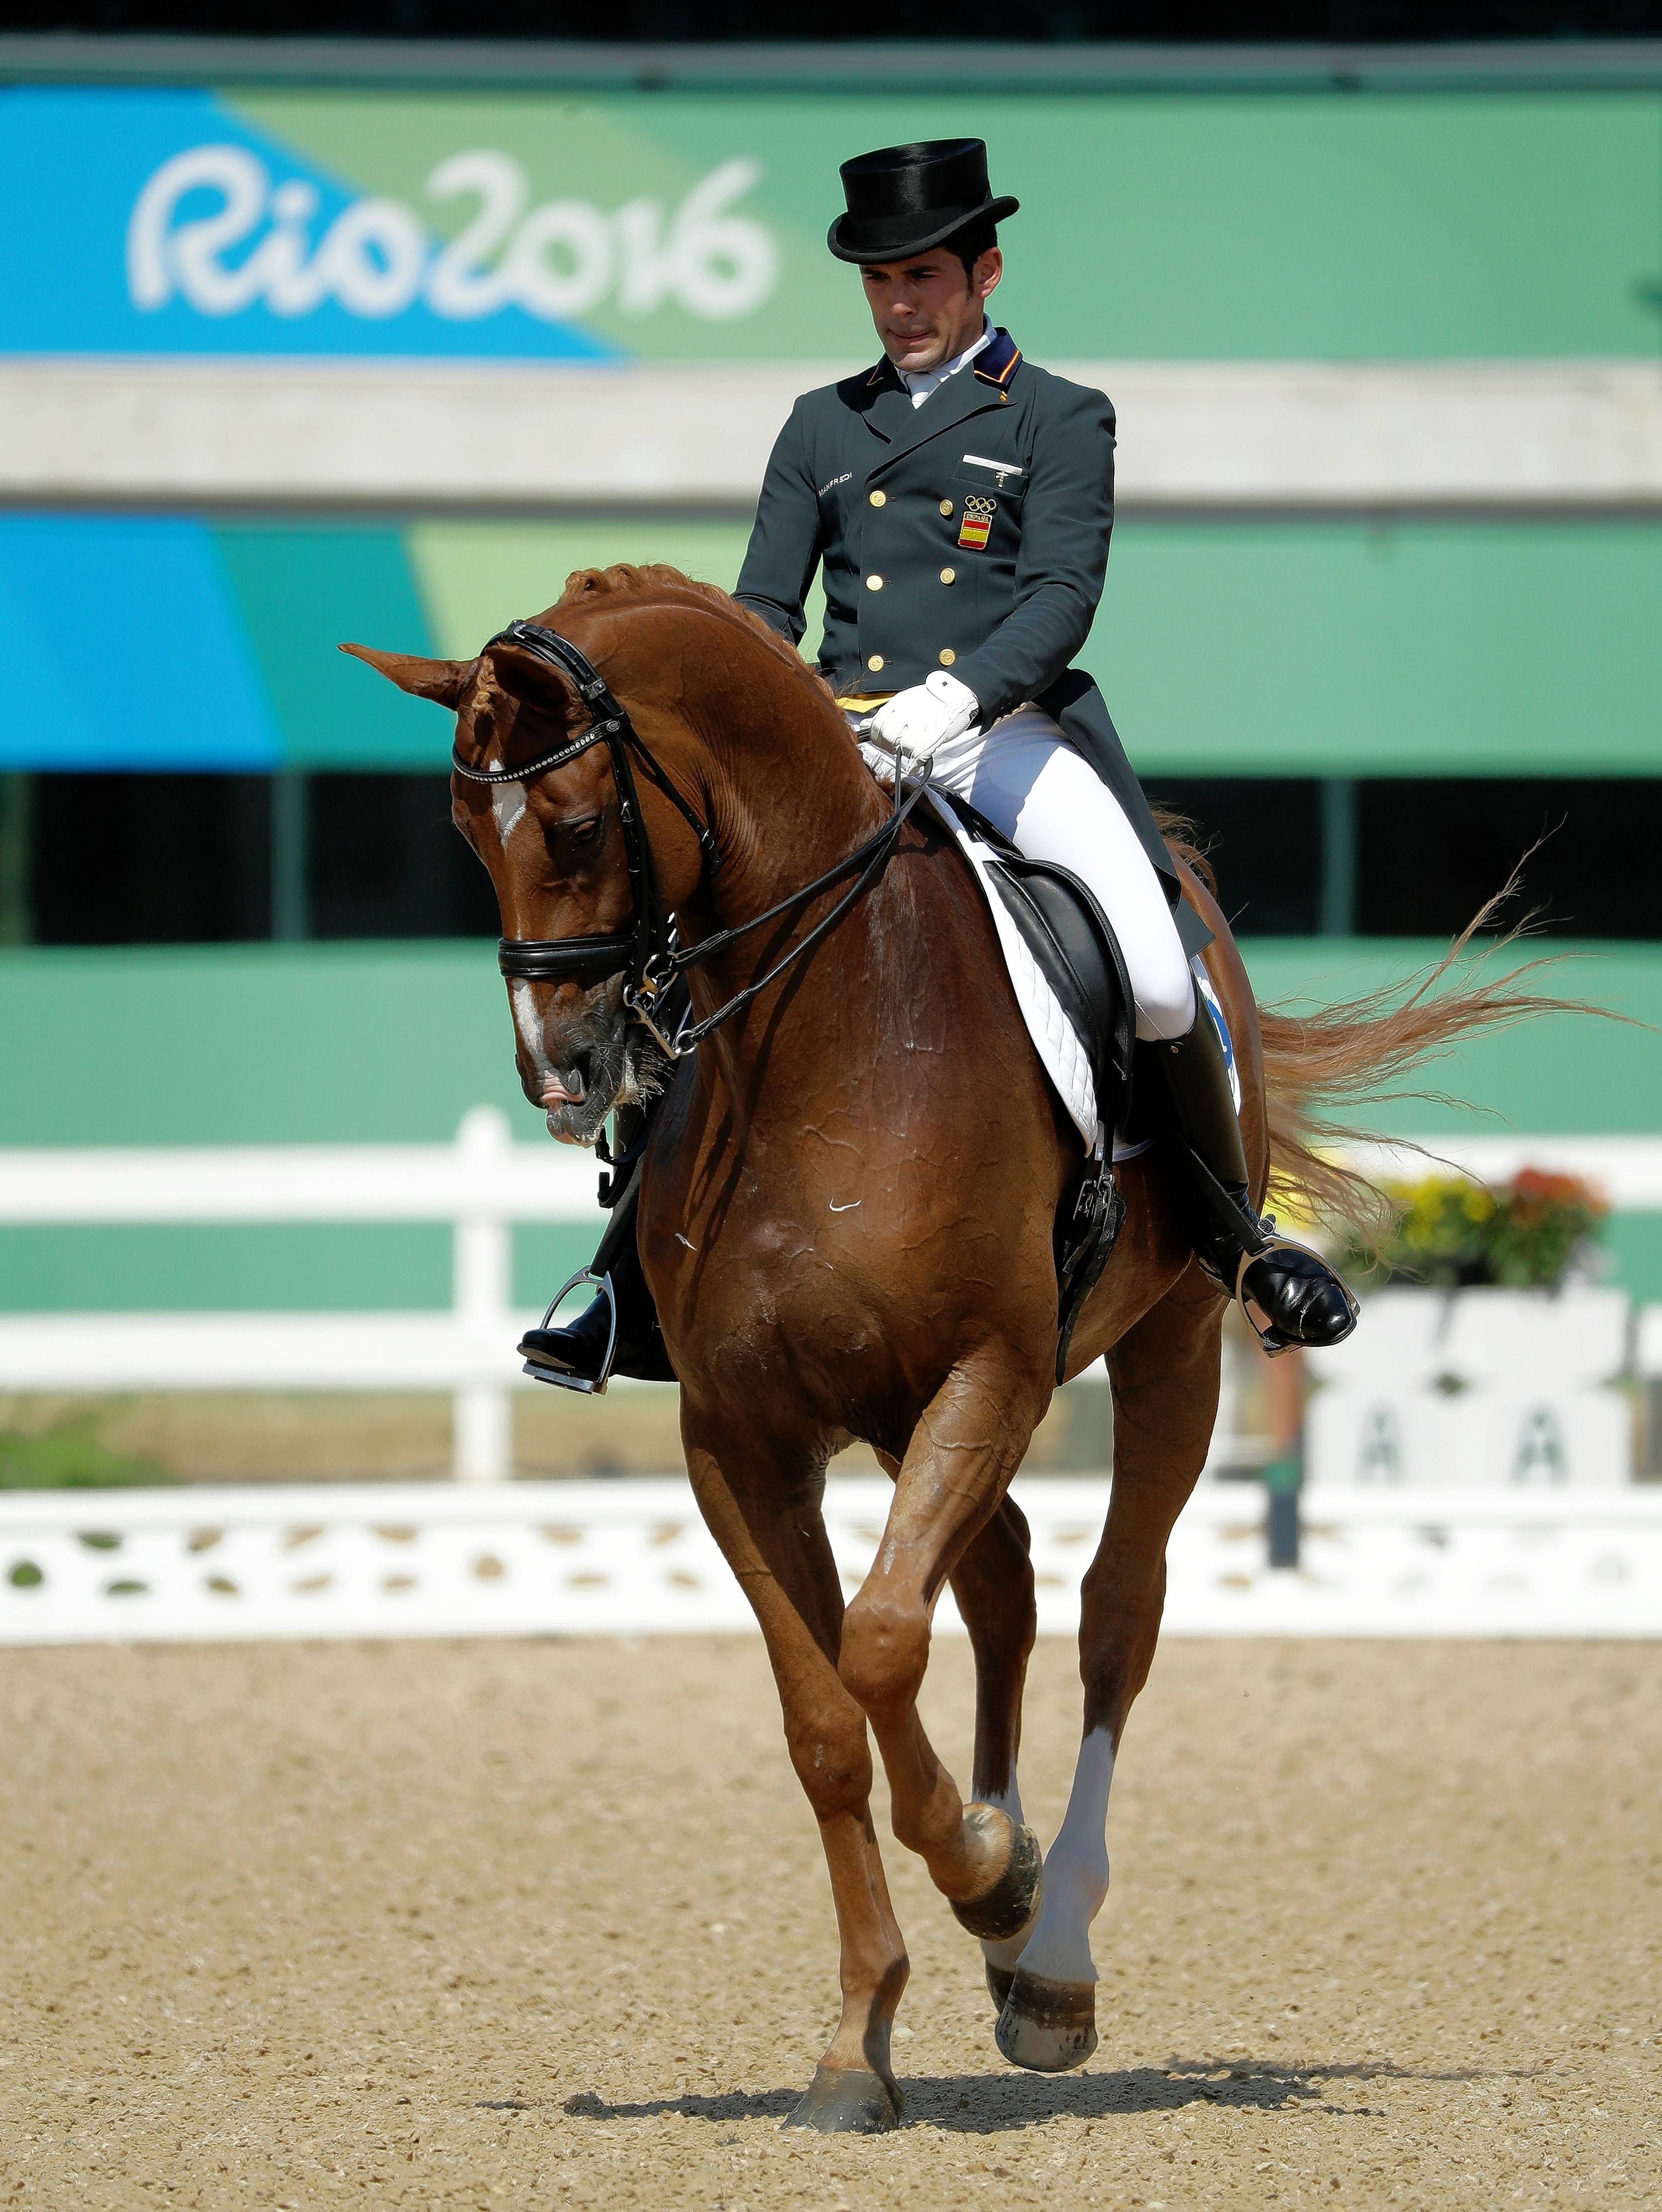 Spain's Severo Jesus Jurado Lopez, riding Lorenzo, competes in the equestrian dressage individual competition at the 2016 Summer Olympics in Rio de Janeiro, Brazil.